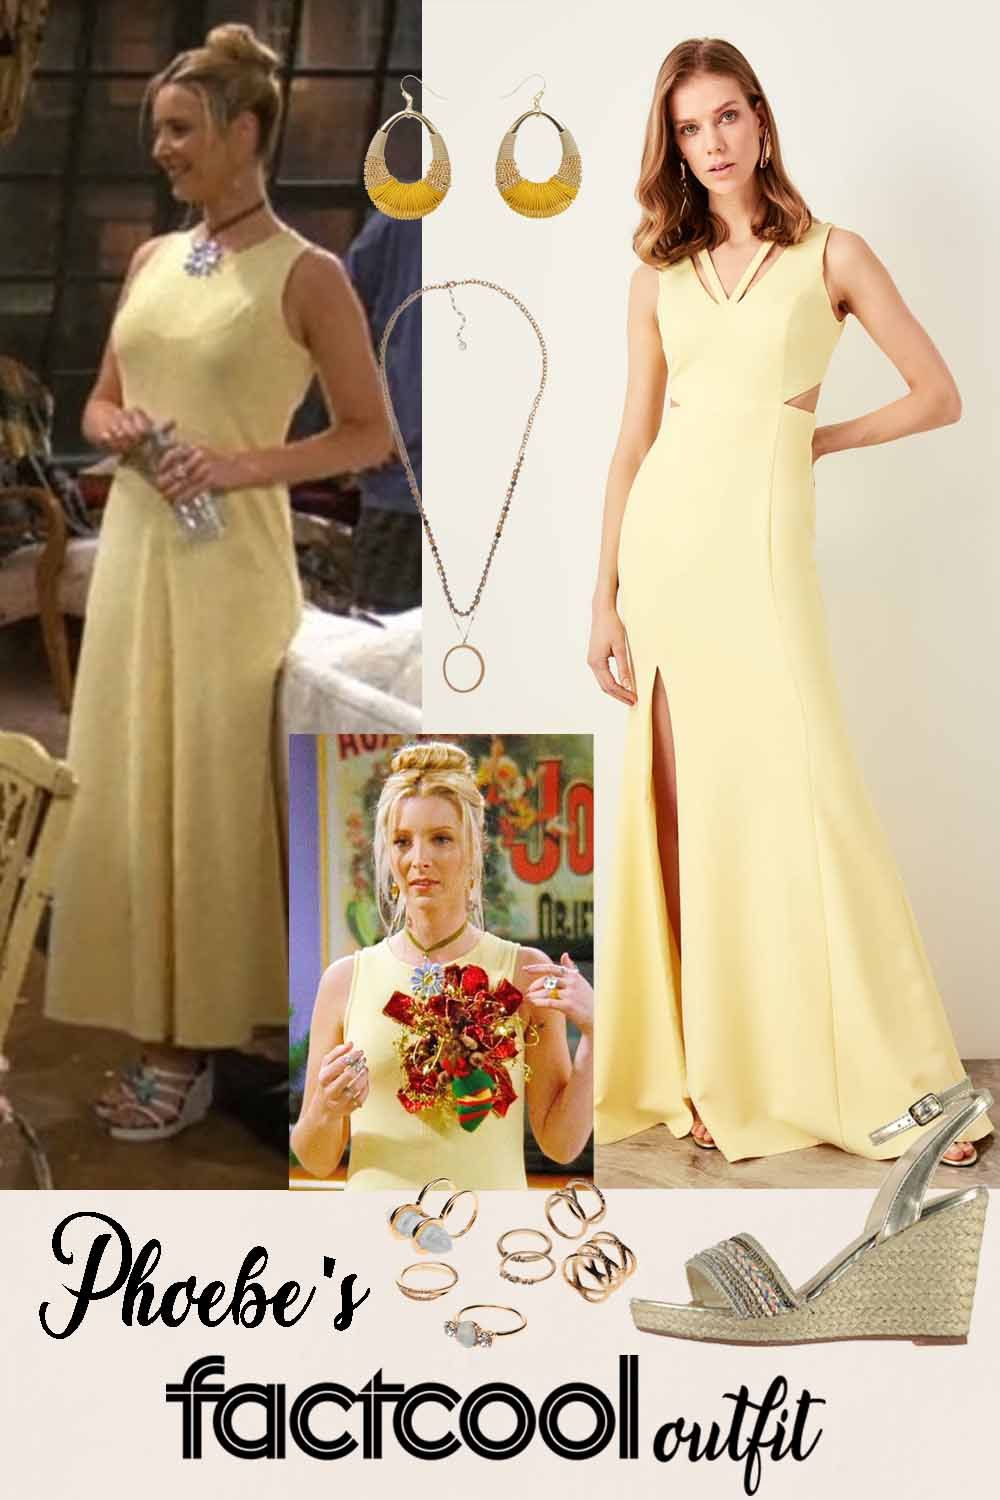 Phoebe S Iconic Outfit Inspo Formal Dresses Long Dresses Outfits [ 1500 x 1000 Pixel ]